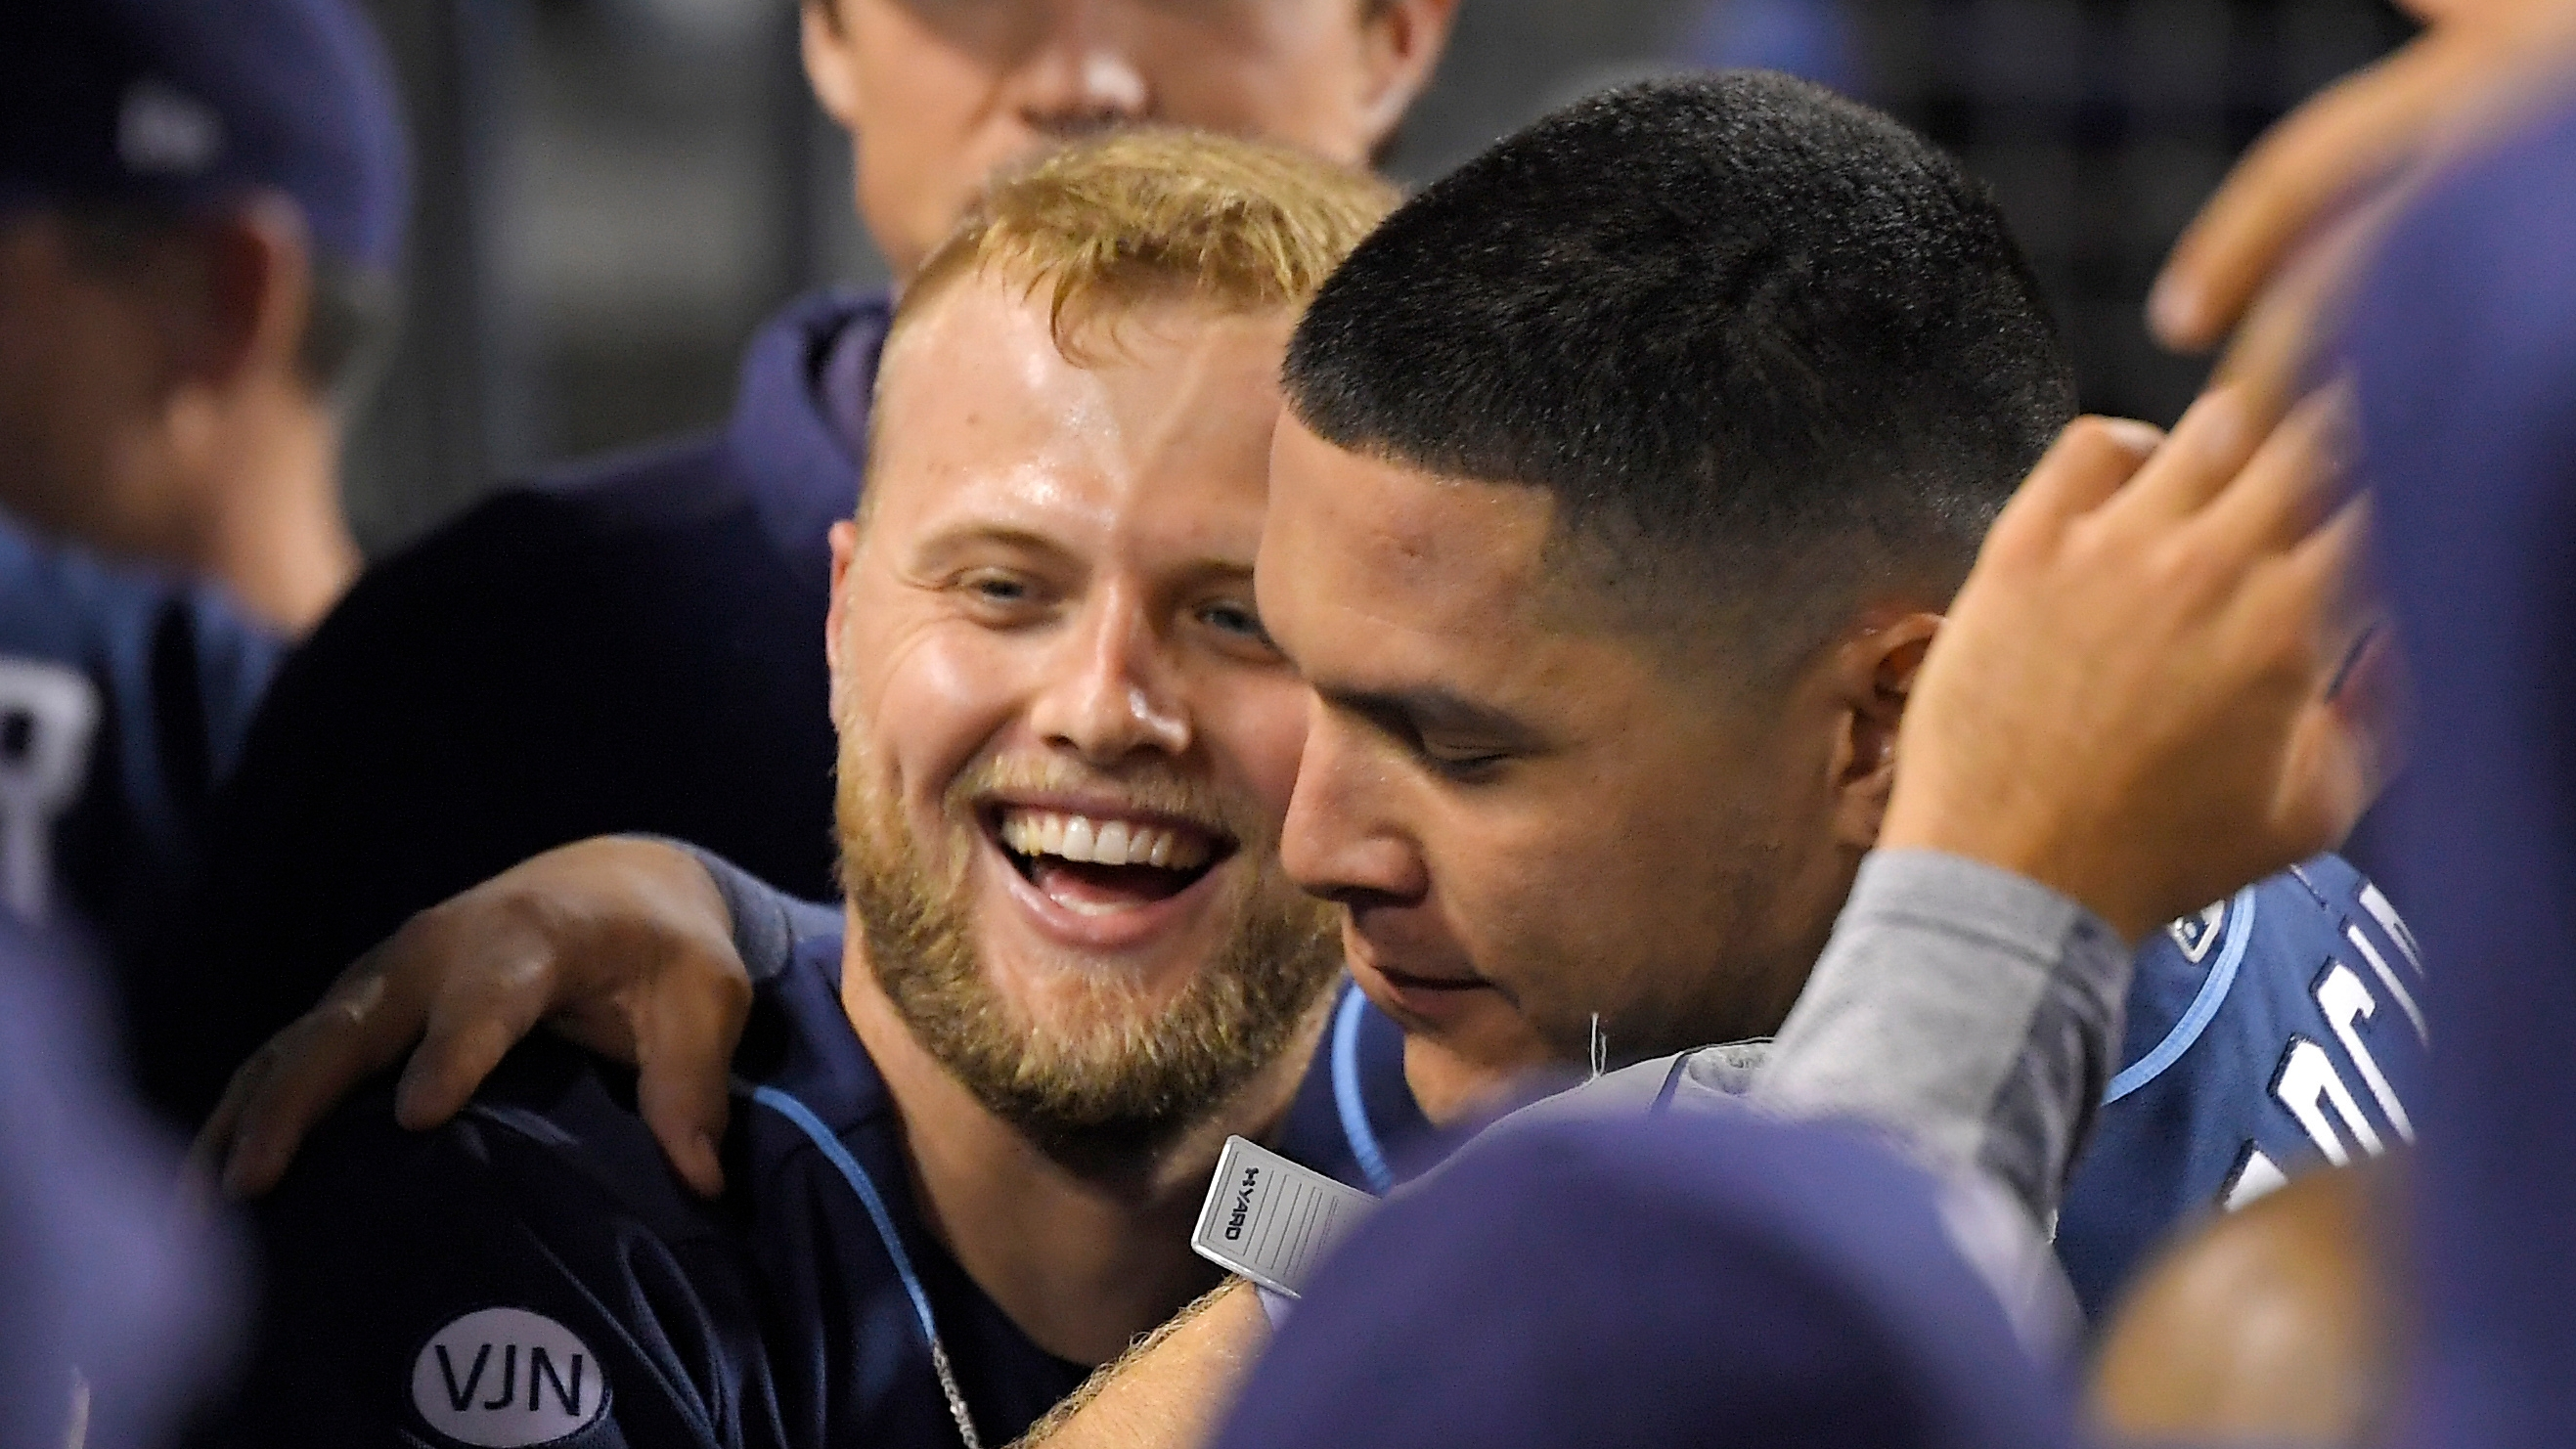 Tampa Bay Rays announce postseason ticket plans